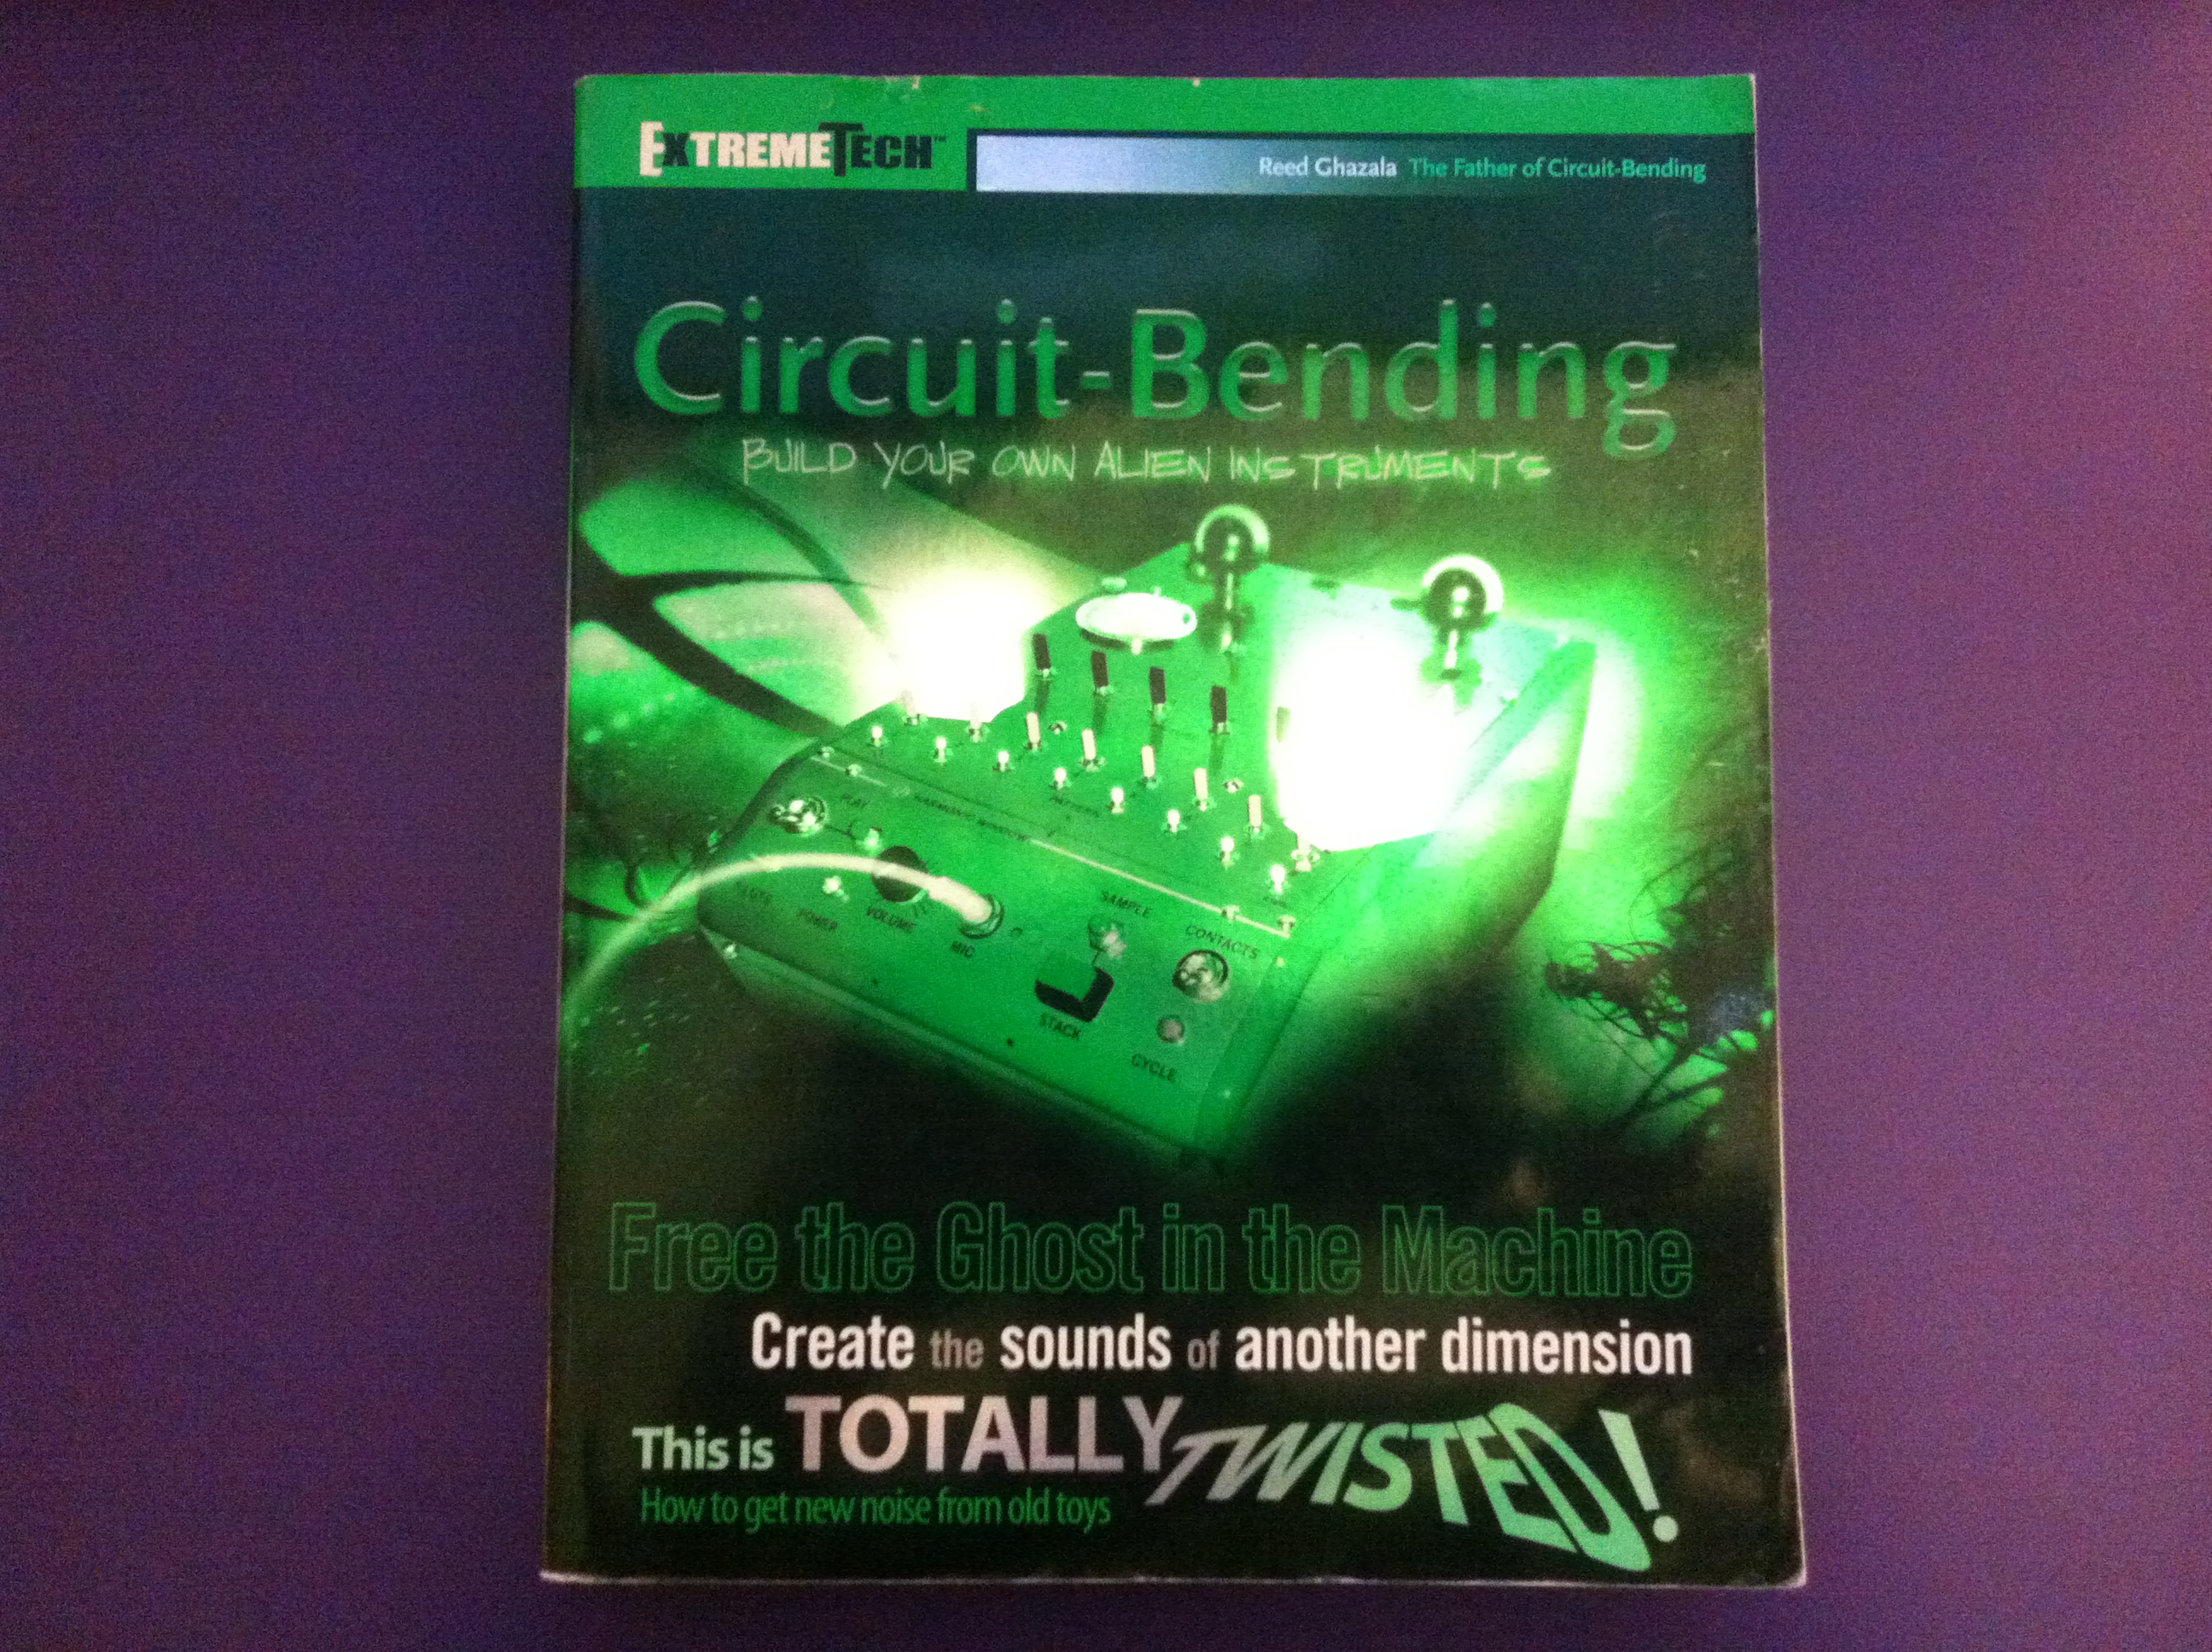 Bend A Blog Dedicated To The World Of Circuit Bending Page 3 Furbycircuitbendingjpg Reed Ghazalas Book On